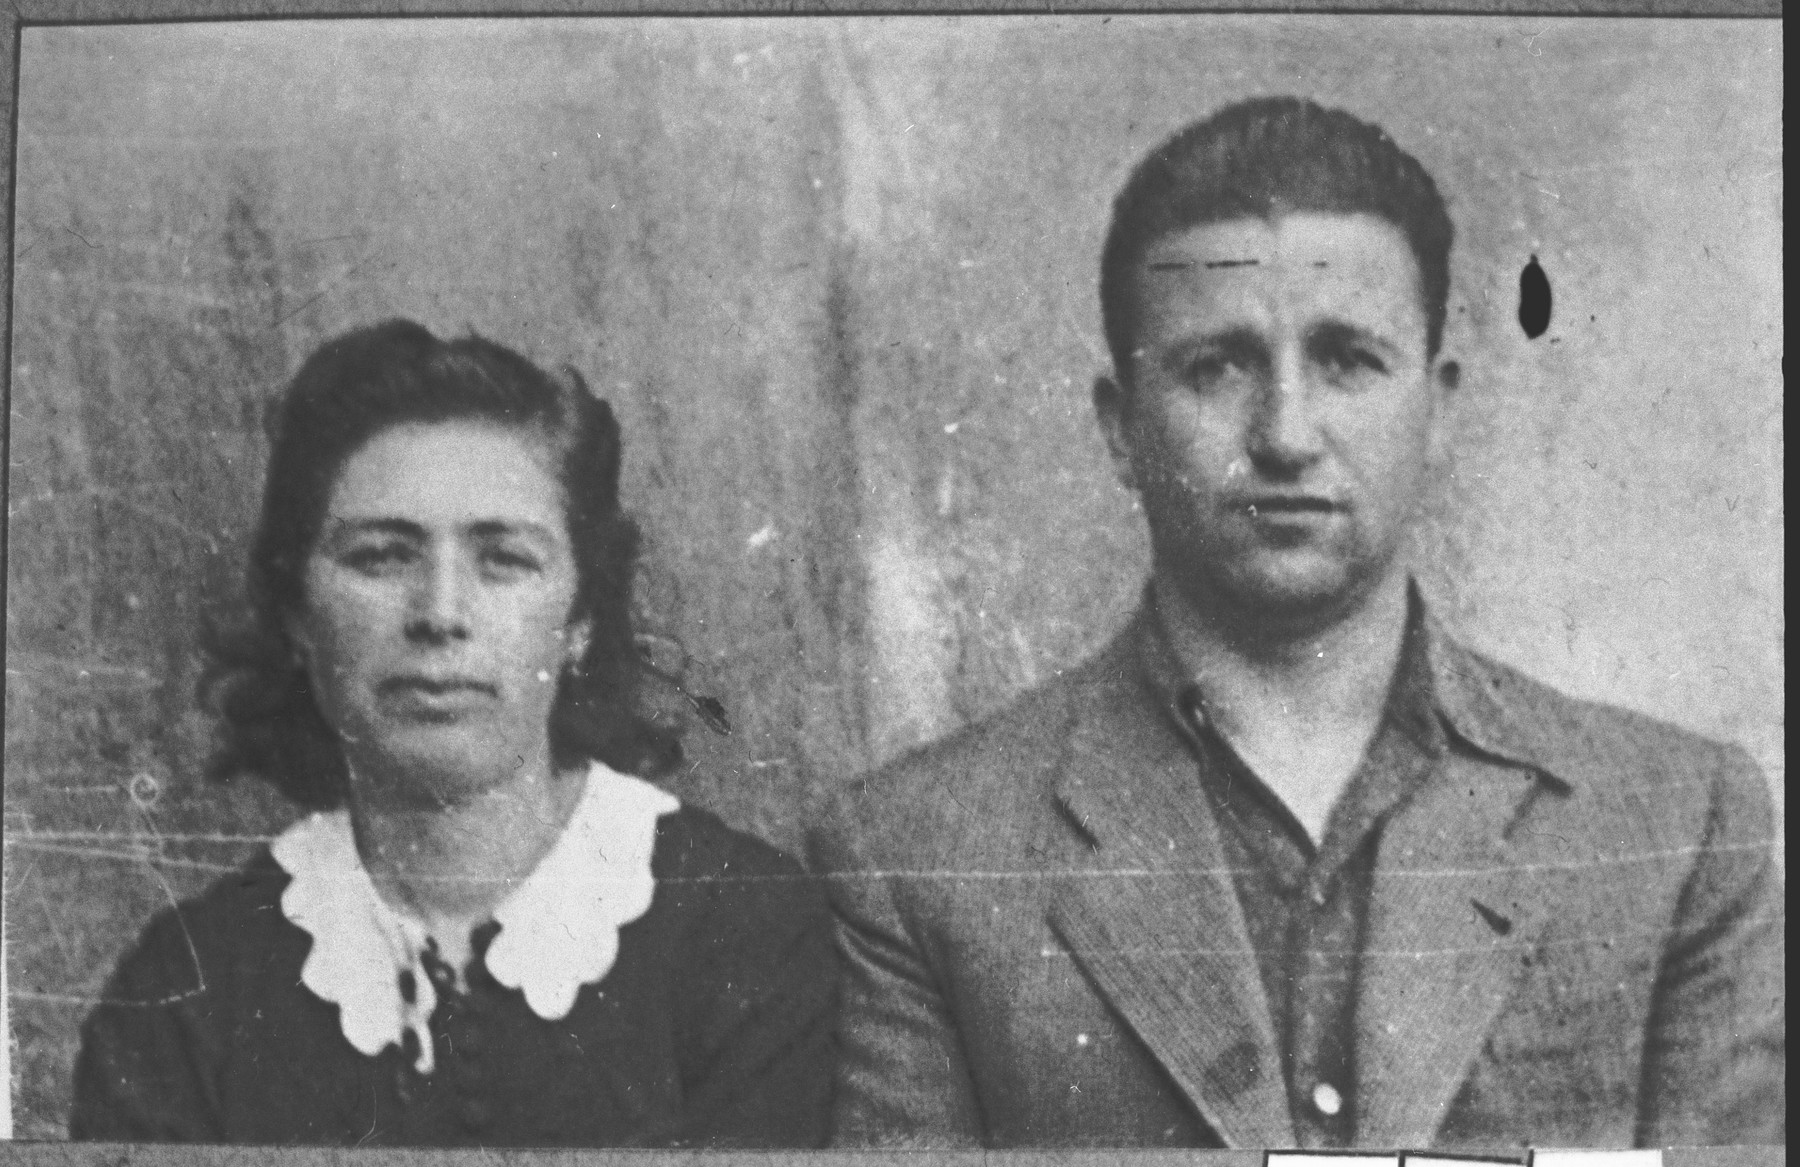 Portrait of Rafael Kalderon and his wife, Sara.  He was a miller.  They lived at Yakushtseva 29 in Bitola.